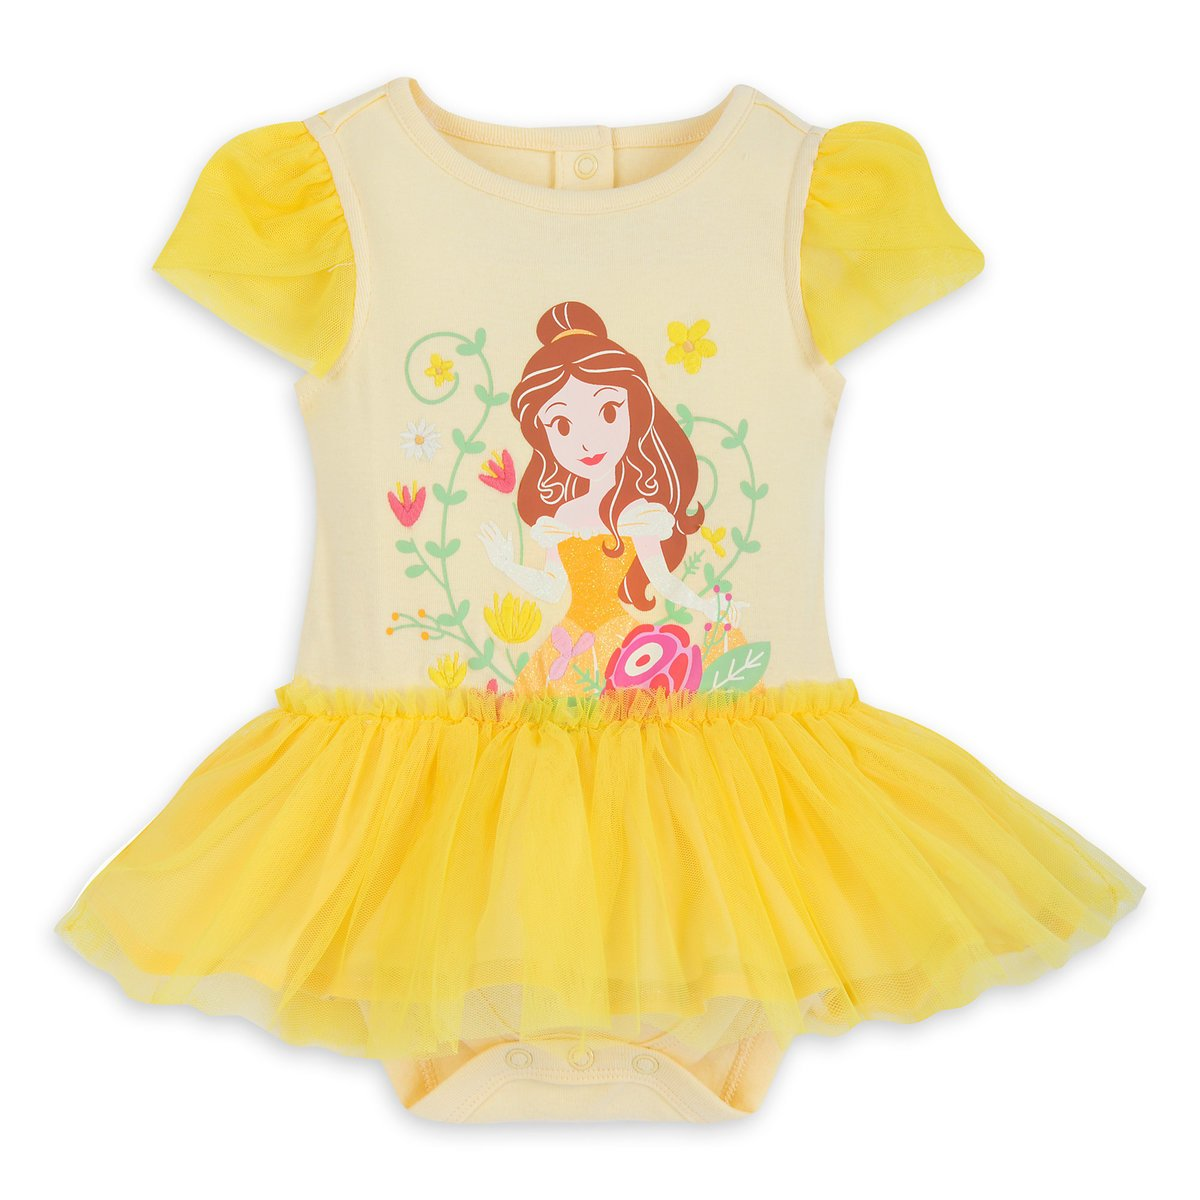 Disney Store Belle Yellow Baby Bodysuit 9-12 Months